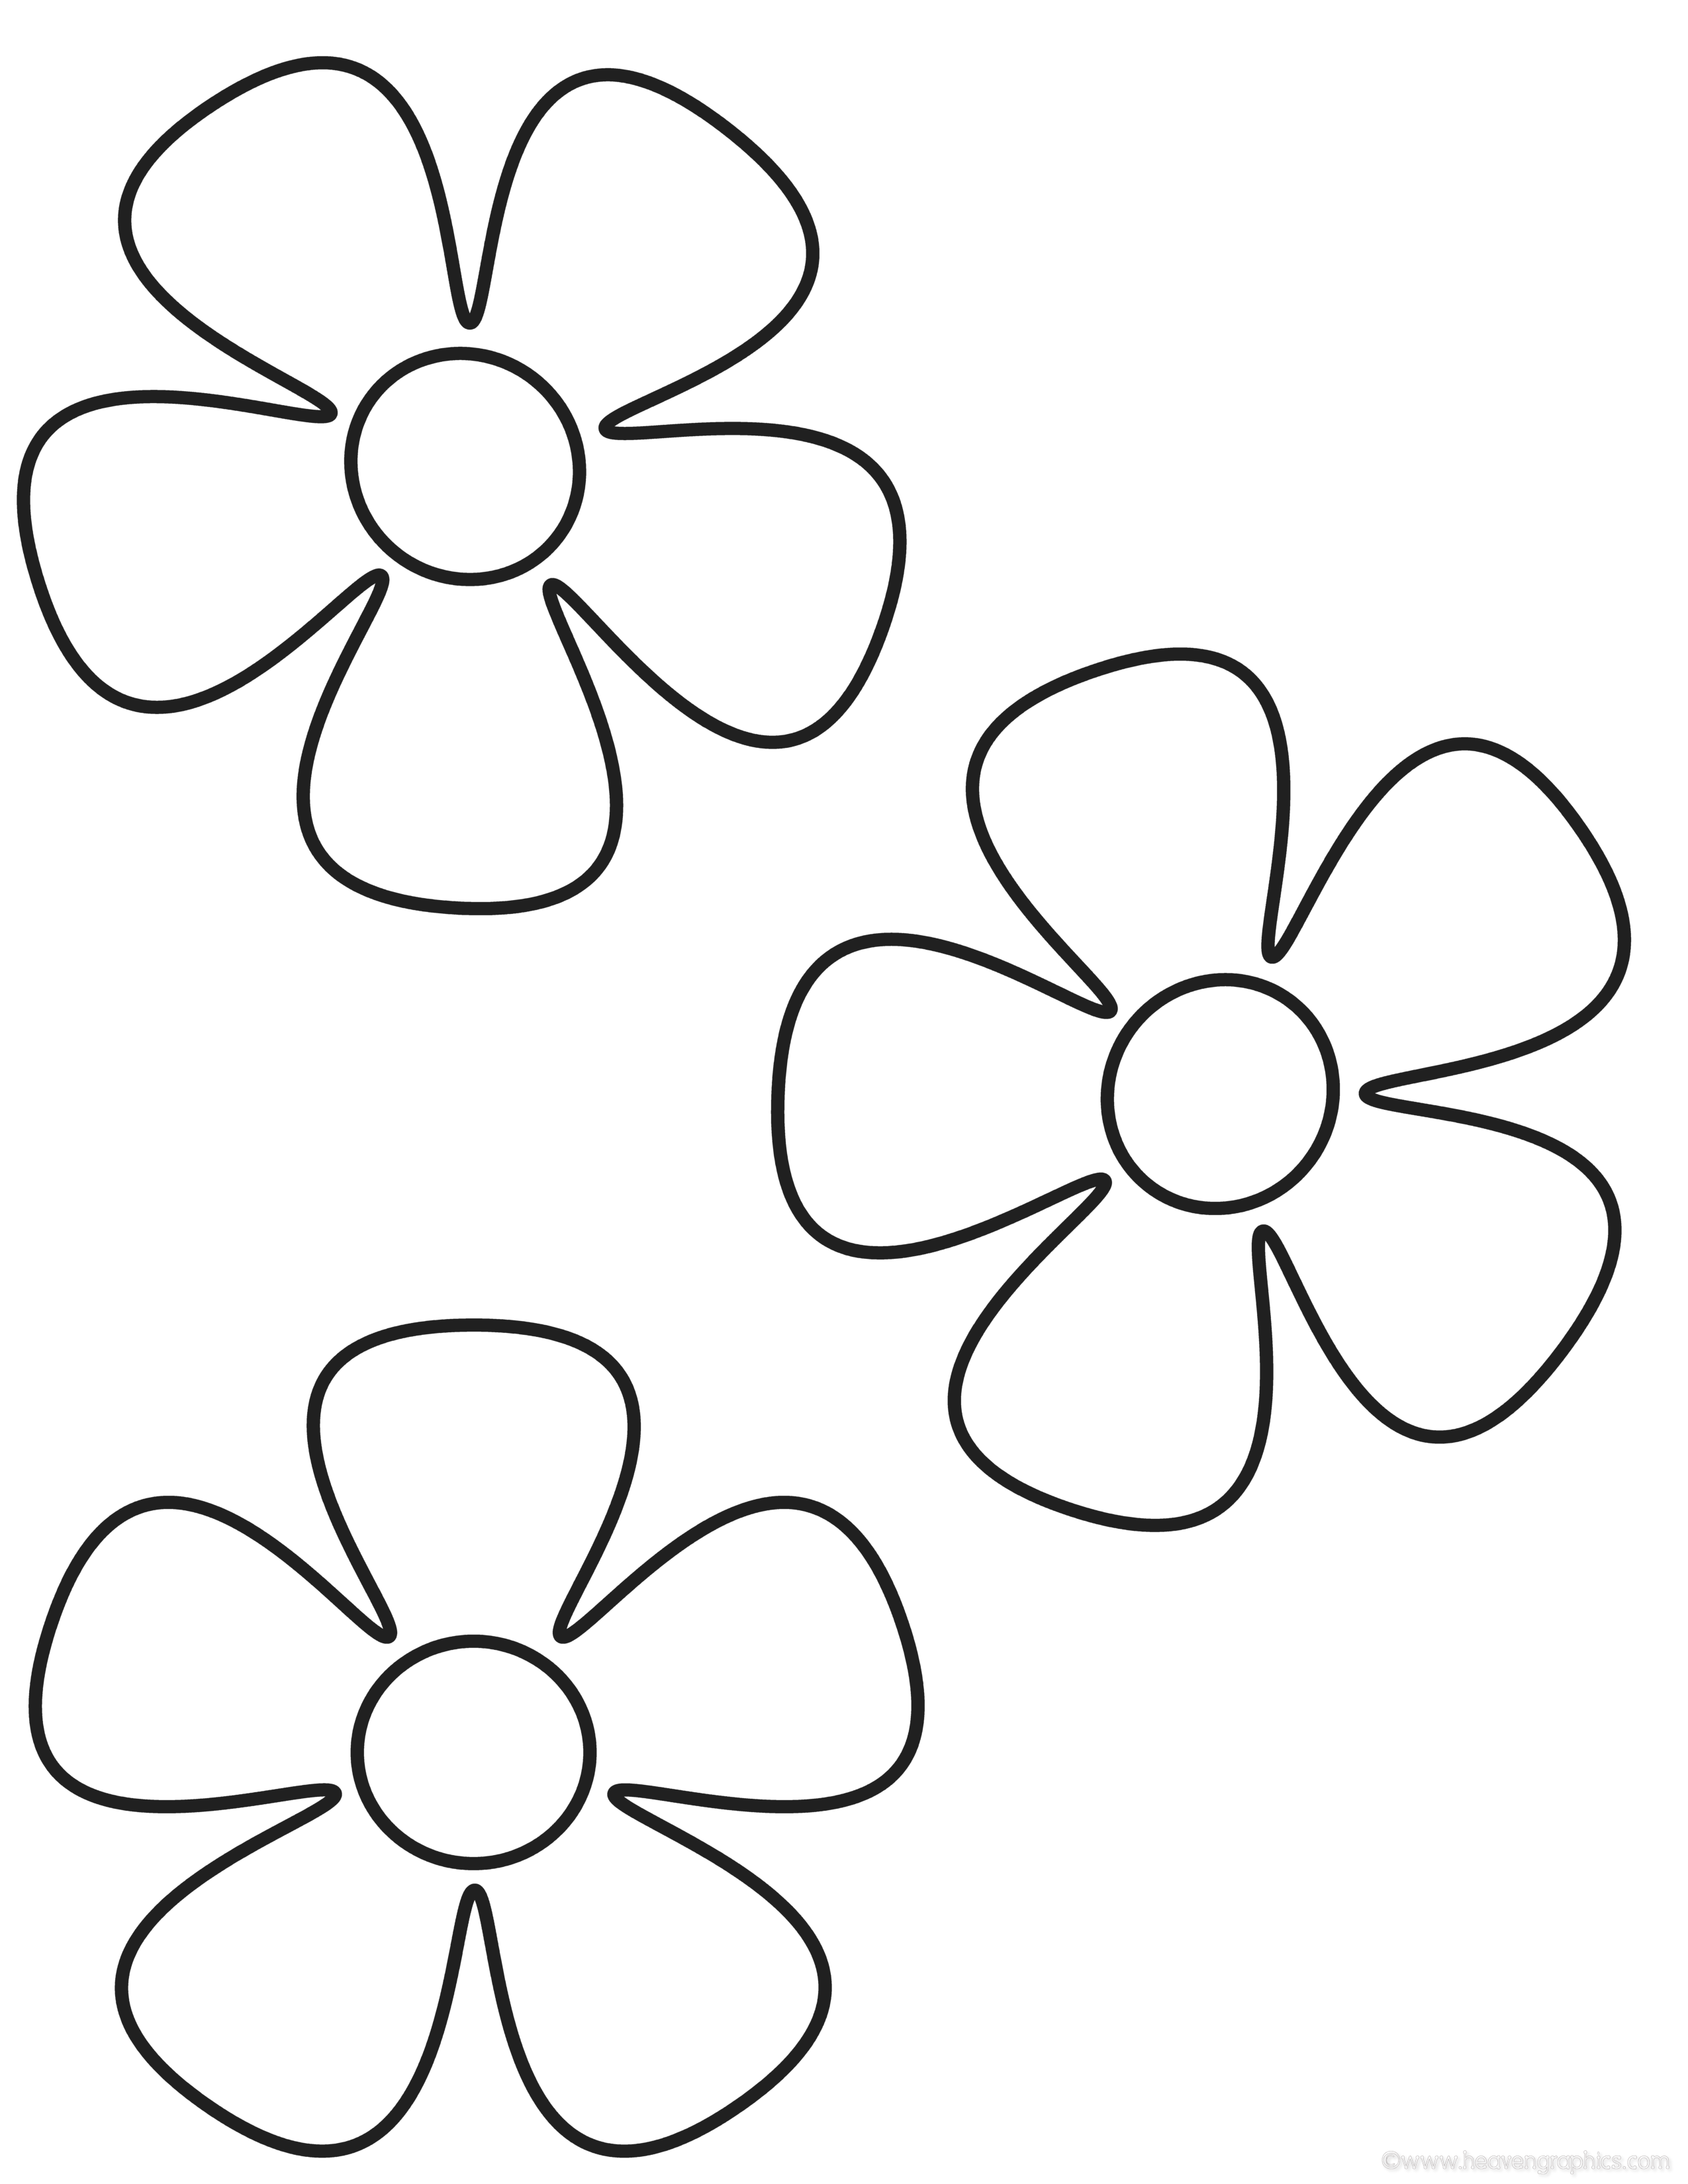 small flower coloring pages - photo#1